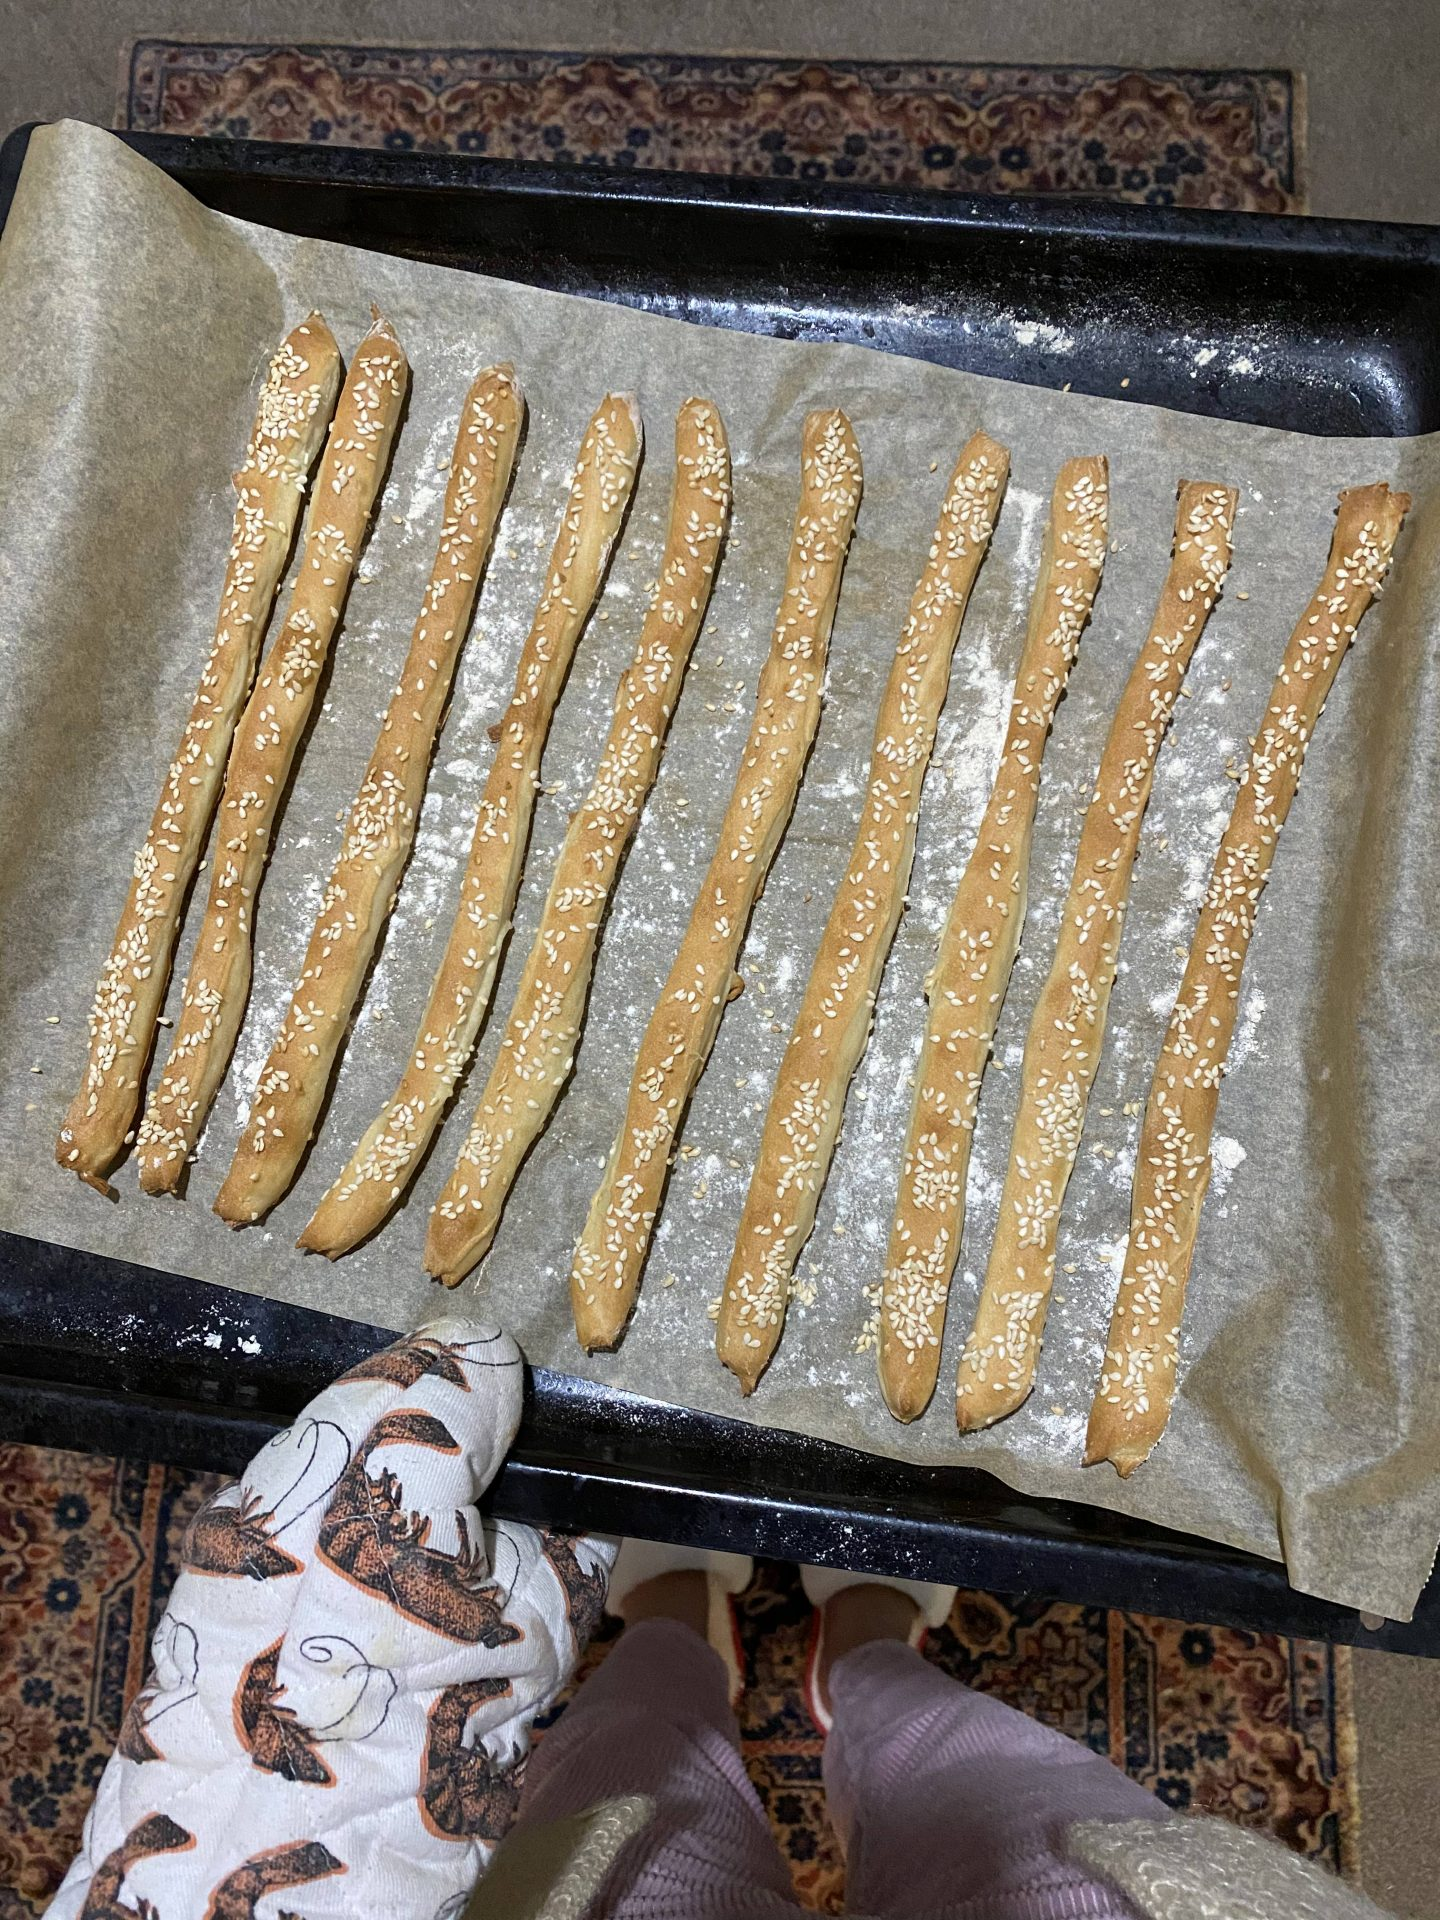 homemade breadsticks on a baking tray